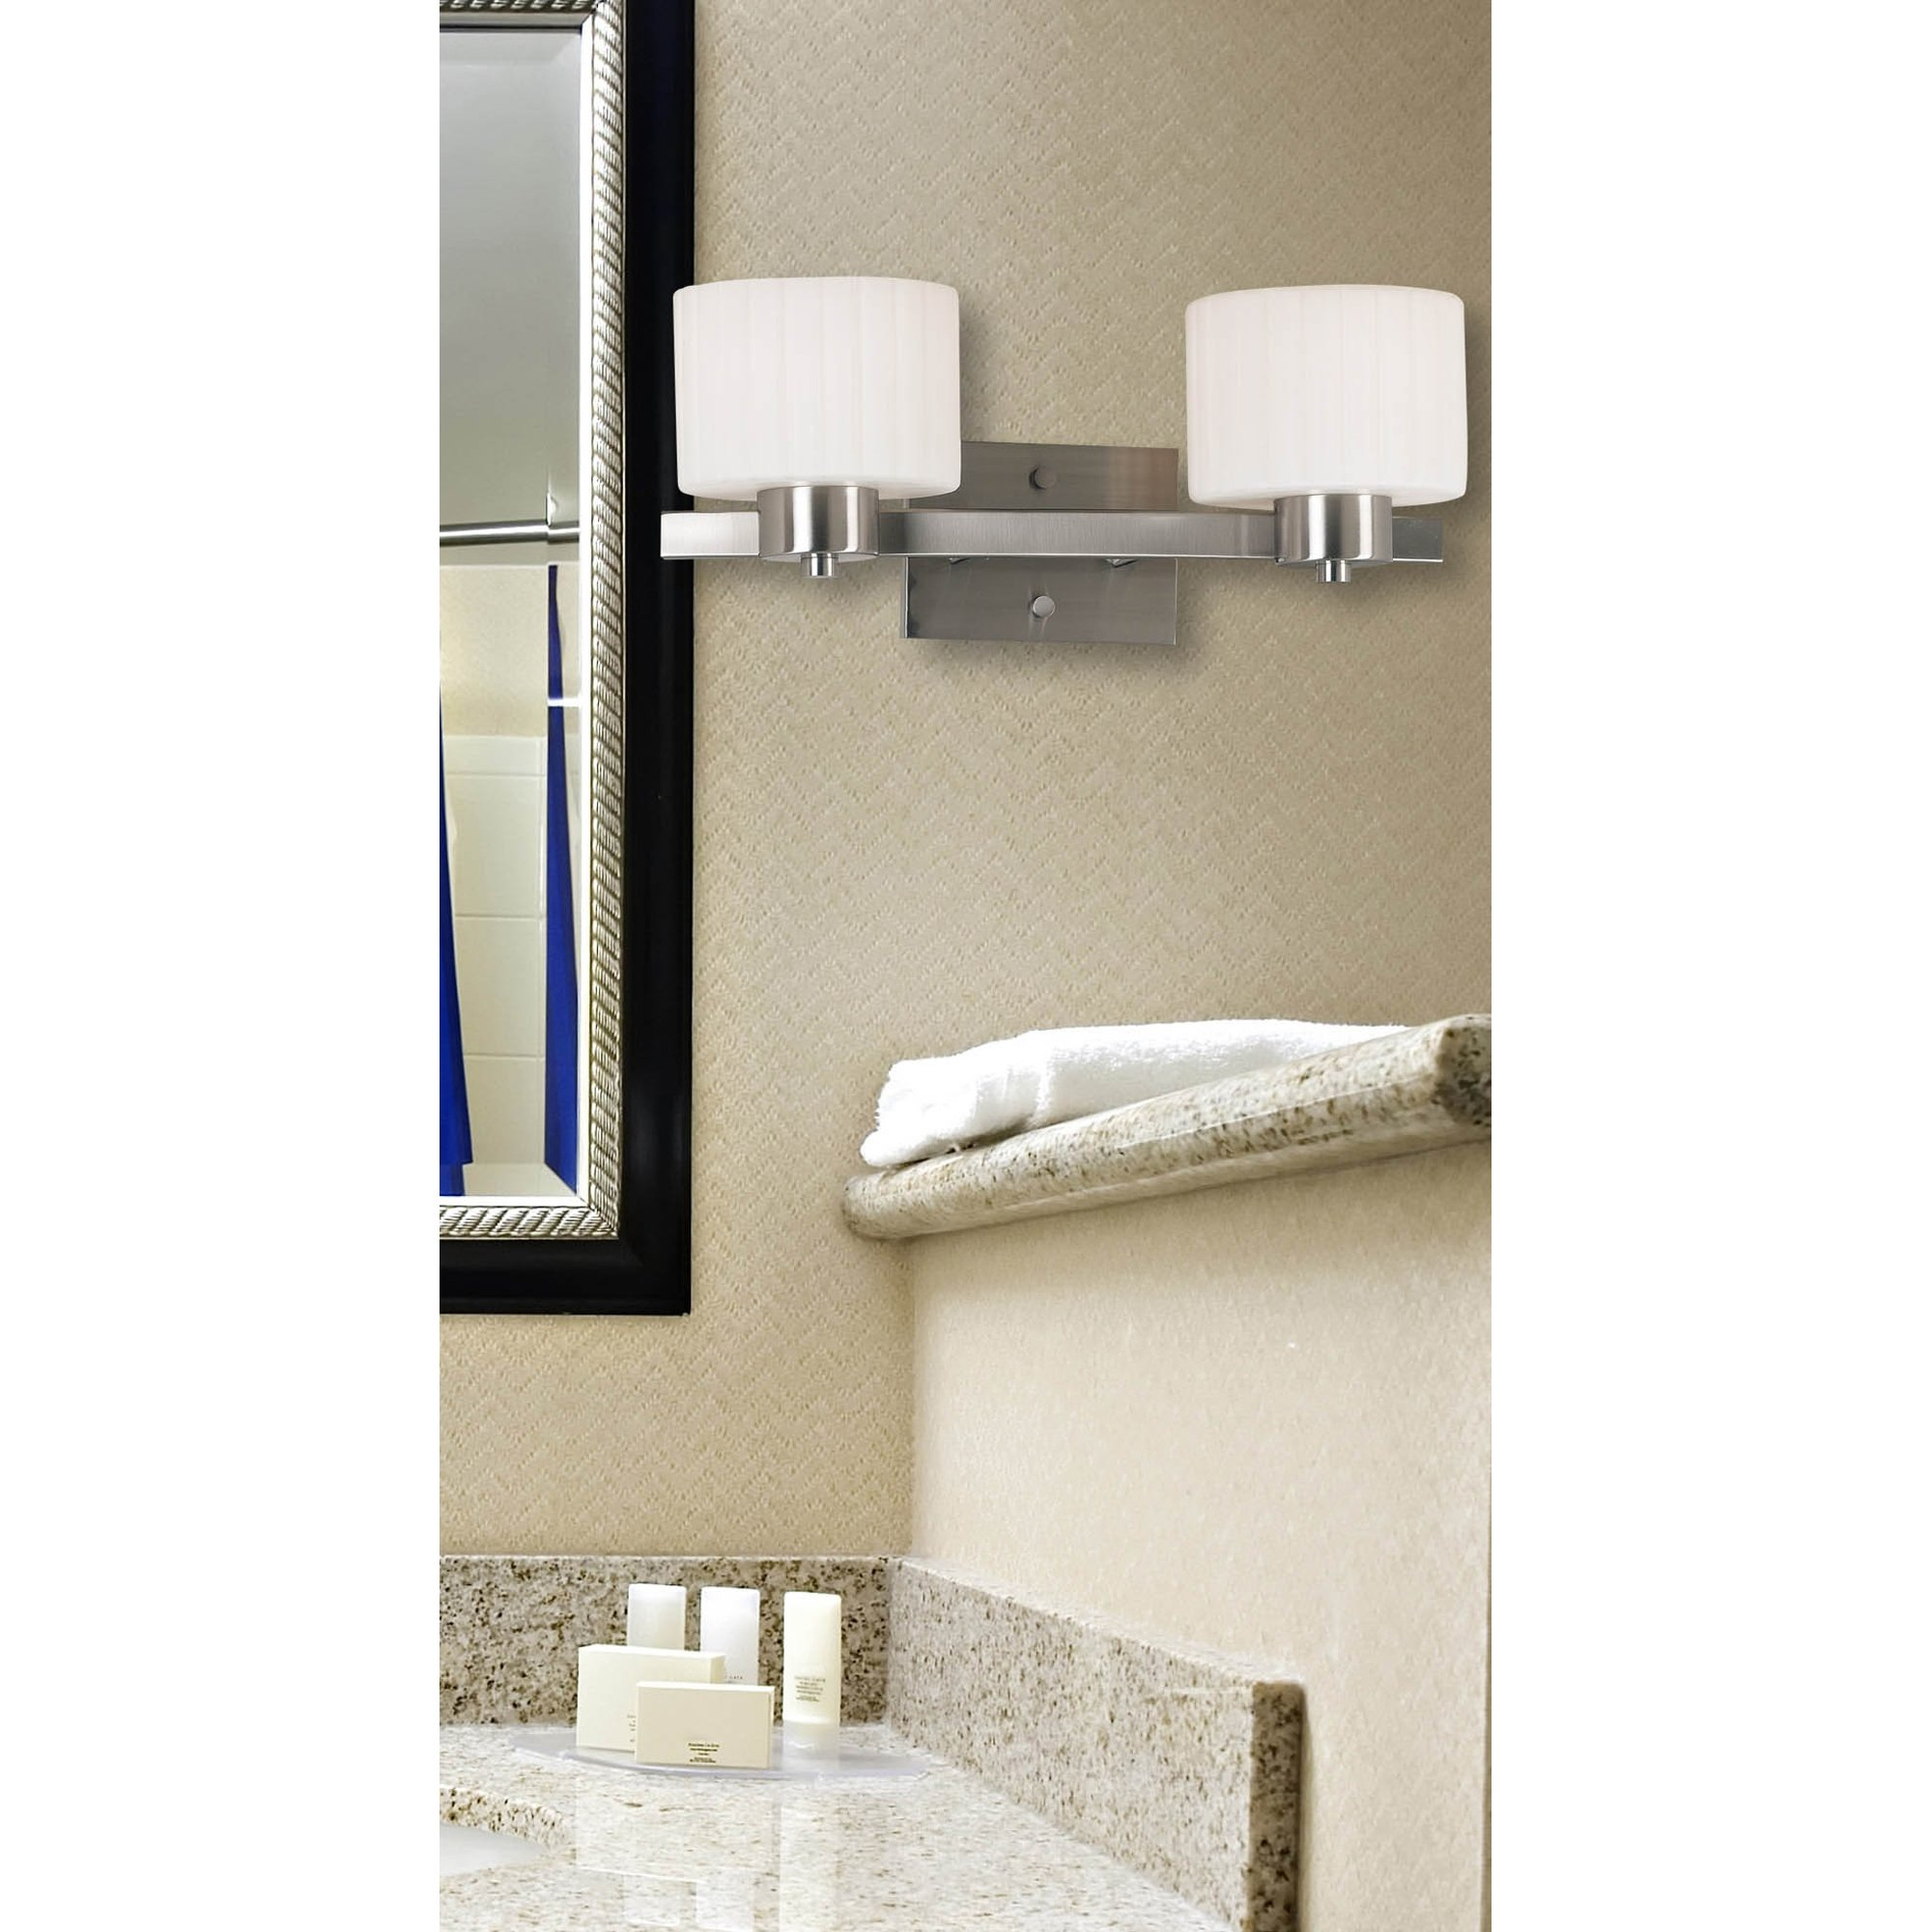 Kenroy Home 80412BS Legacy Two-Light Vanity Light with 6-Inch fluted Glass Shade